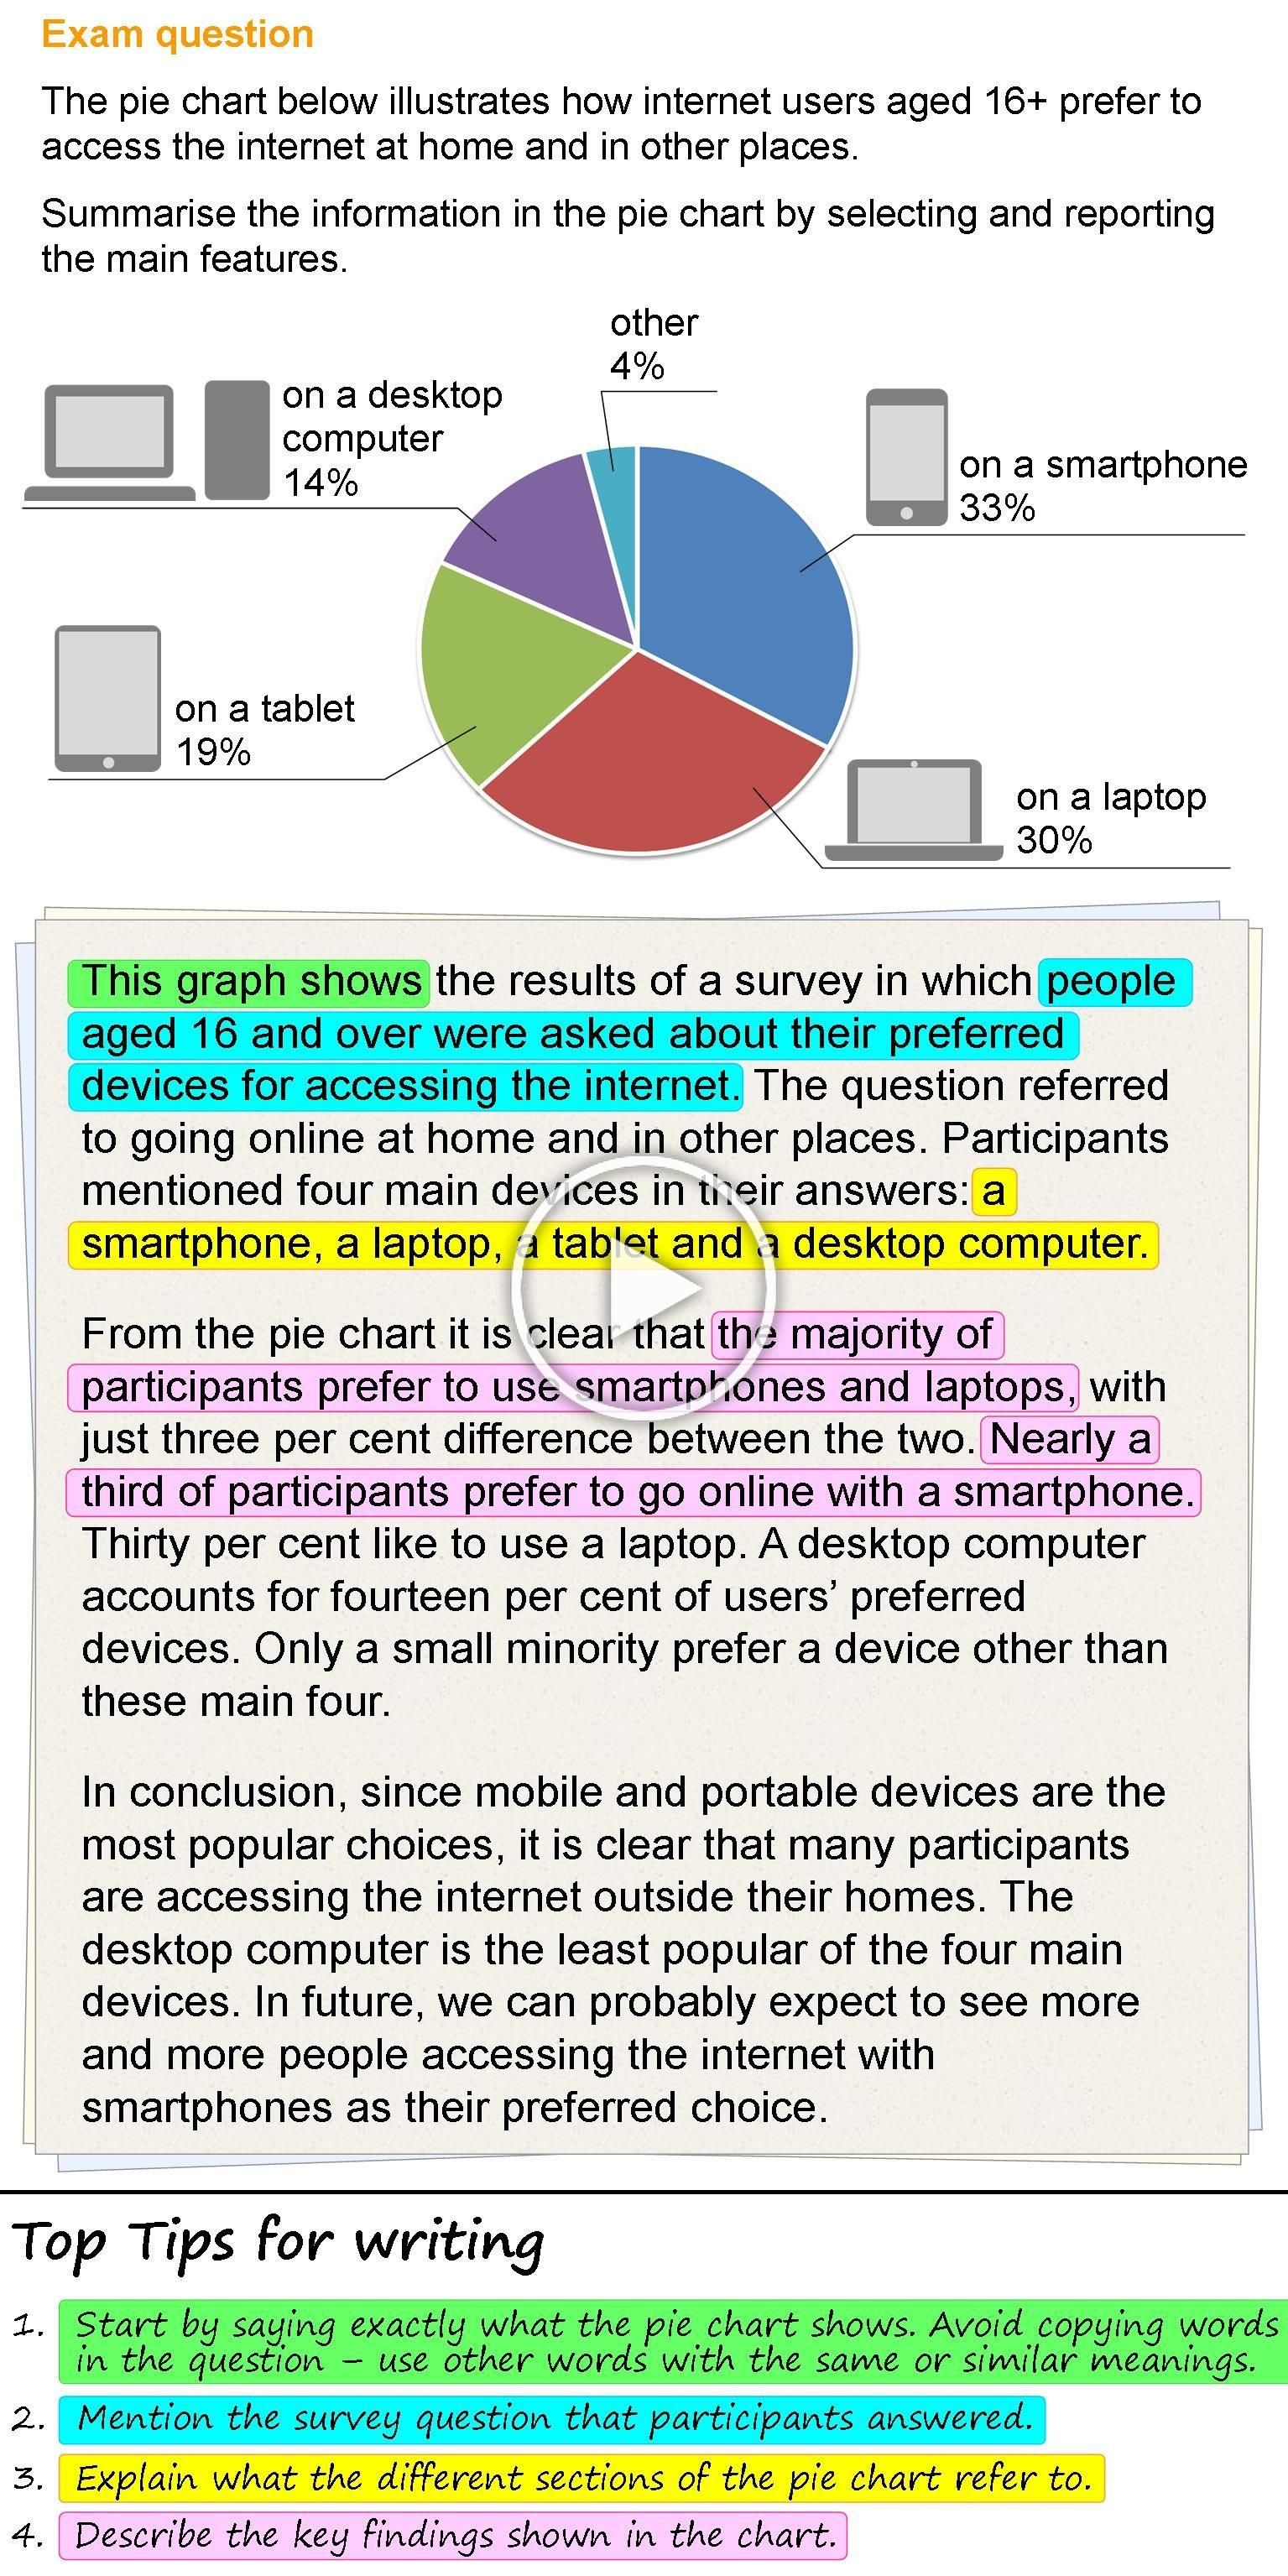 Writing About A Pie Chart Learnenglish Teens British Council In 2020 Ielts Writing Ielts Writing Task1 Ielts Writing Academic